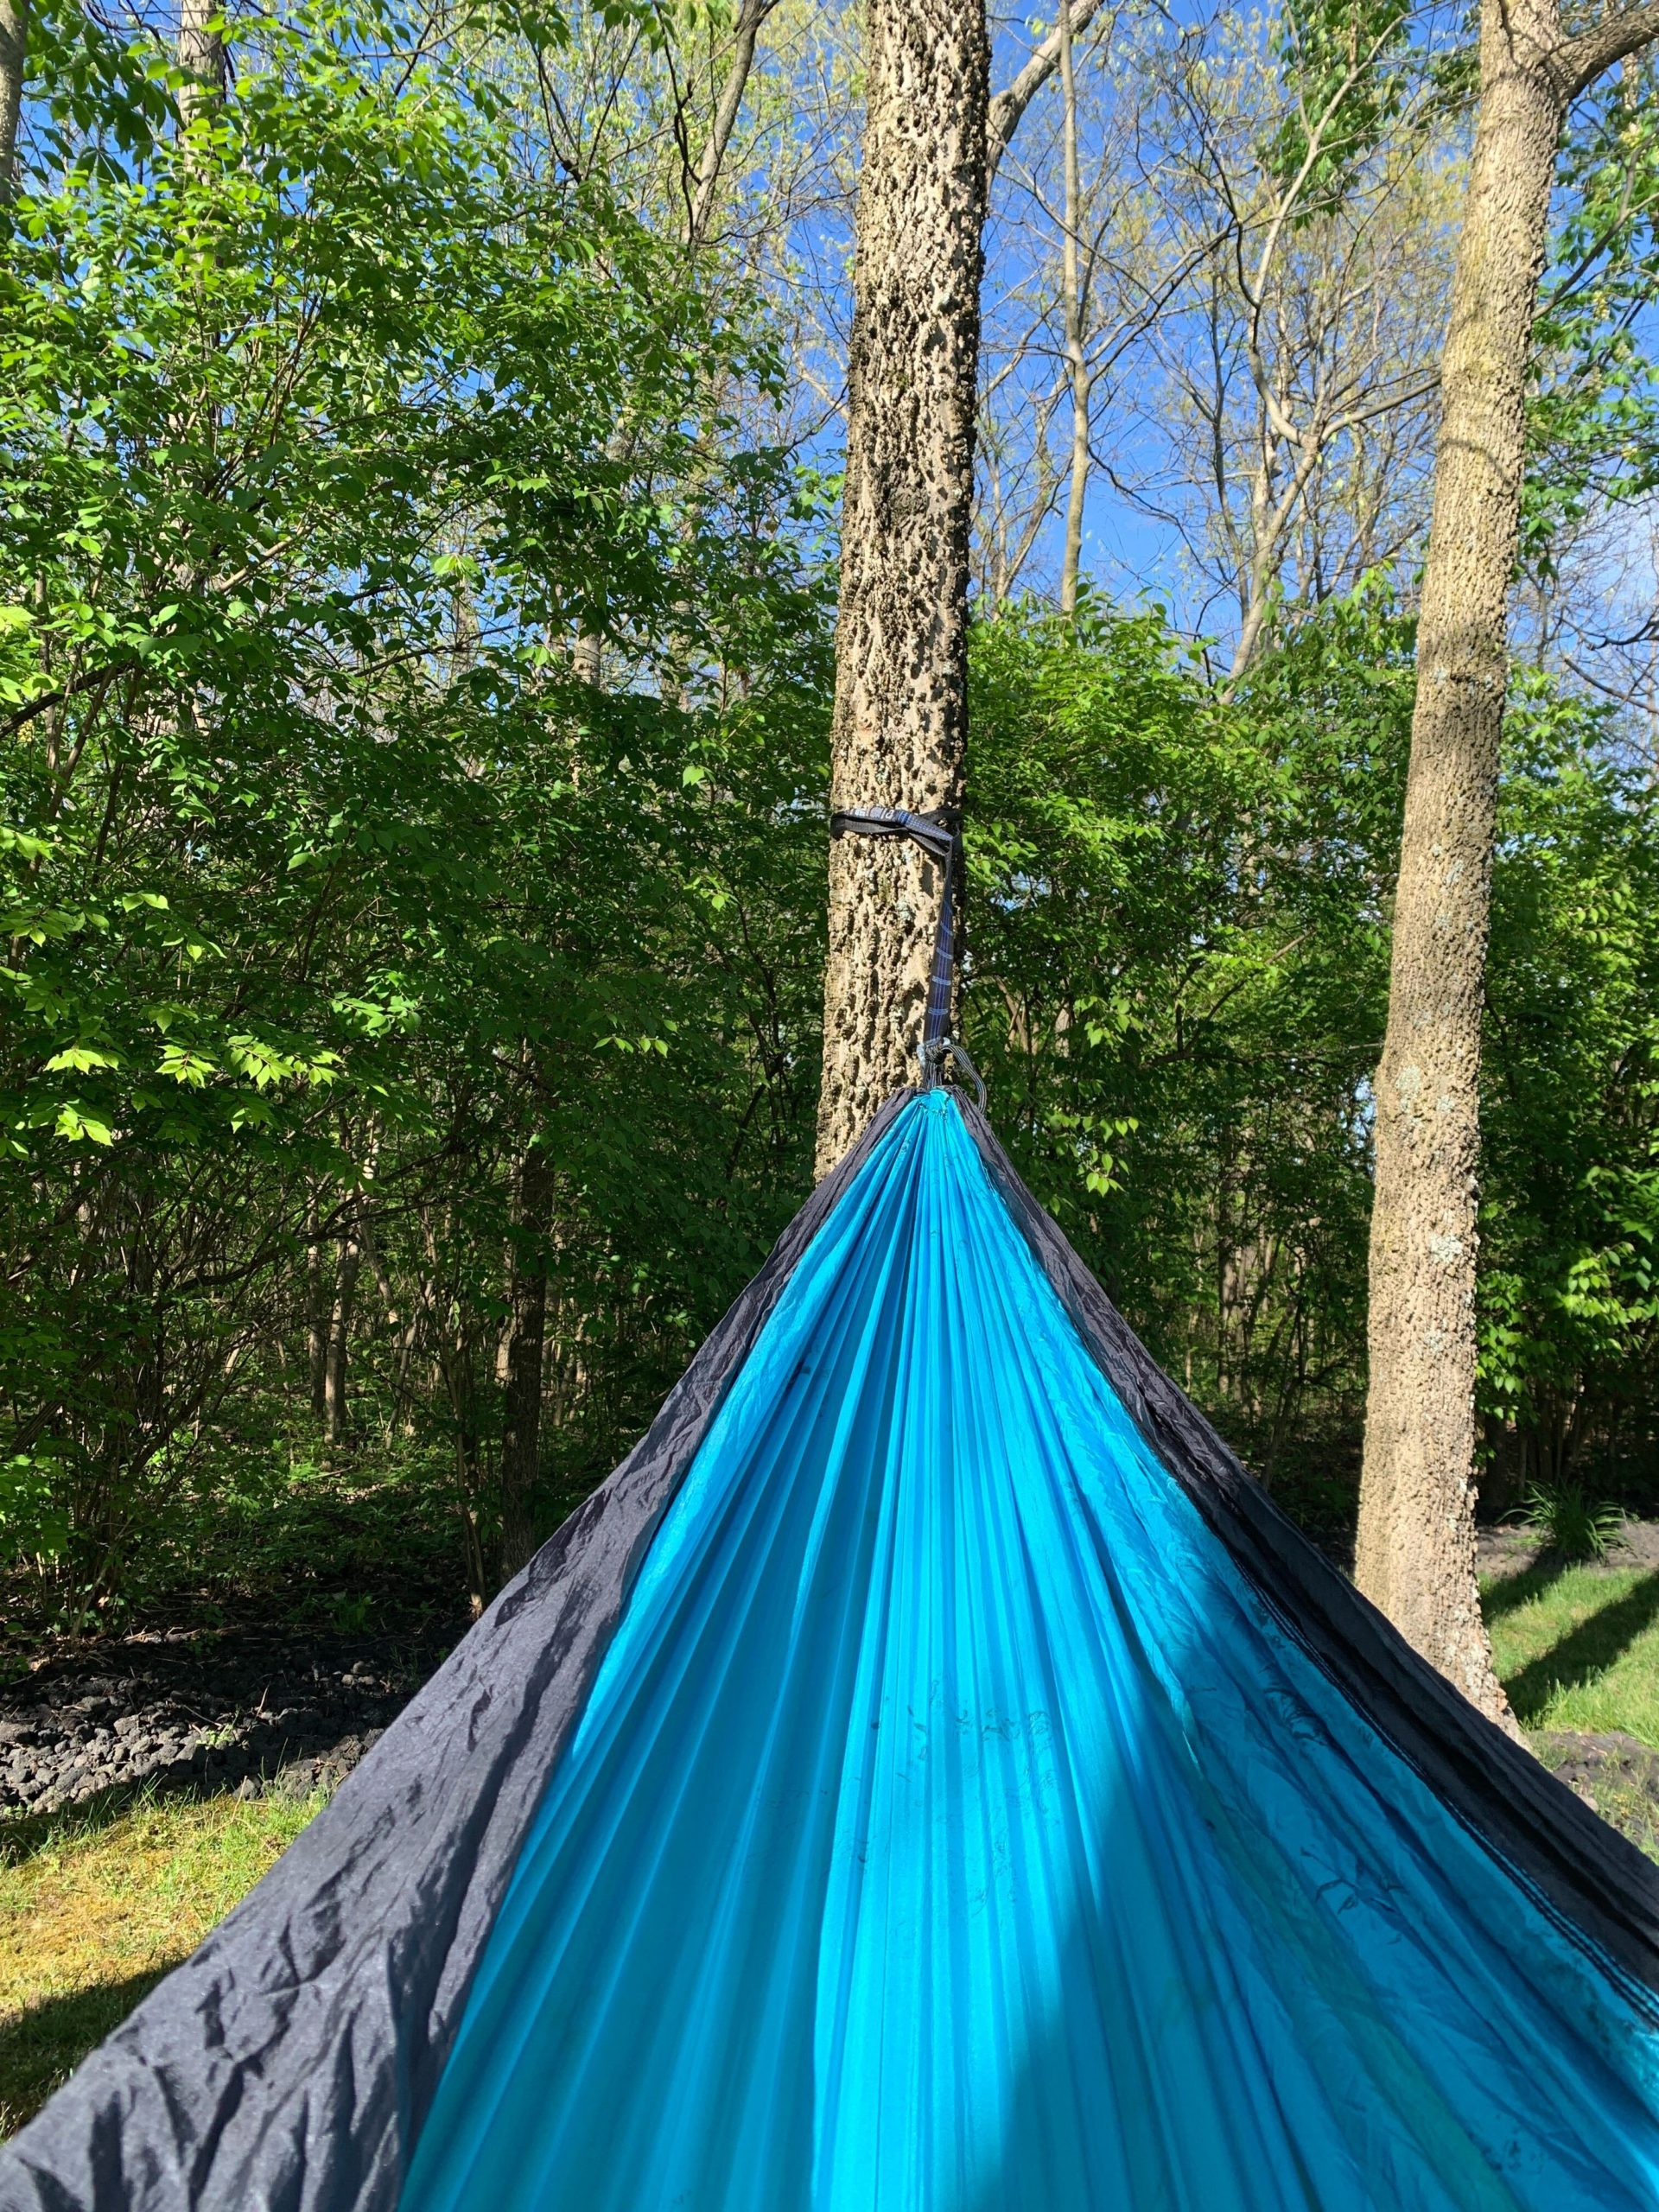 Laying in a hammock outdoors | Photo by Jamie Penwell